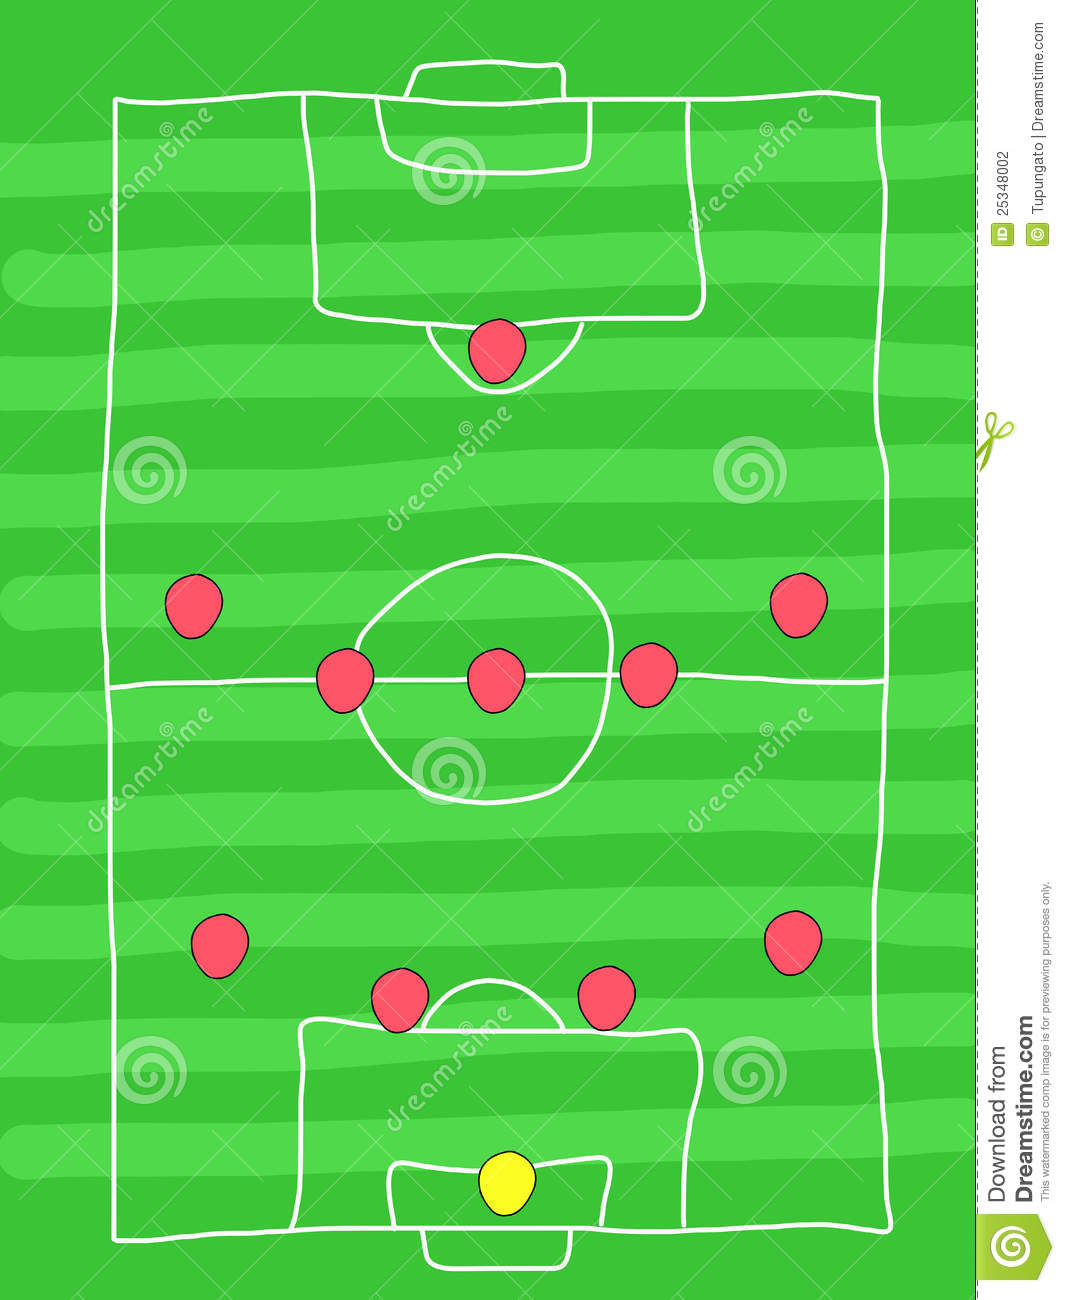 Football Formation Stock Illustration. Image Of Scribble